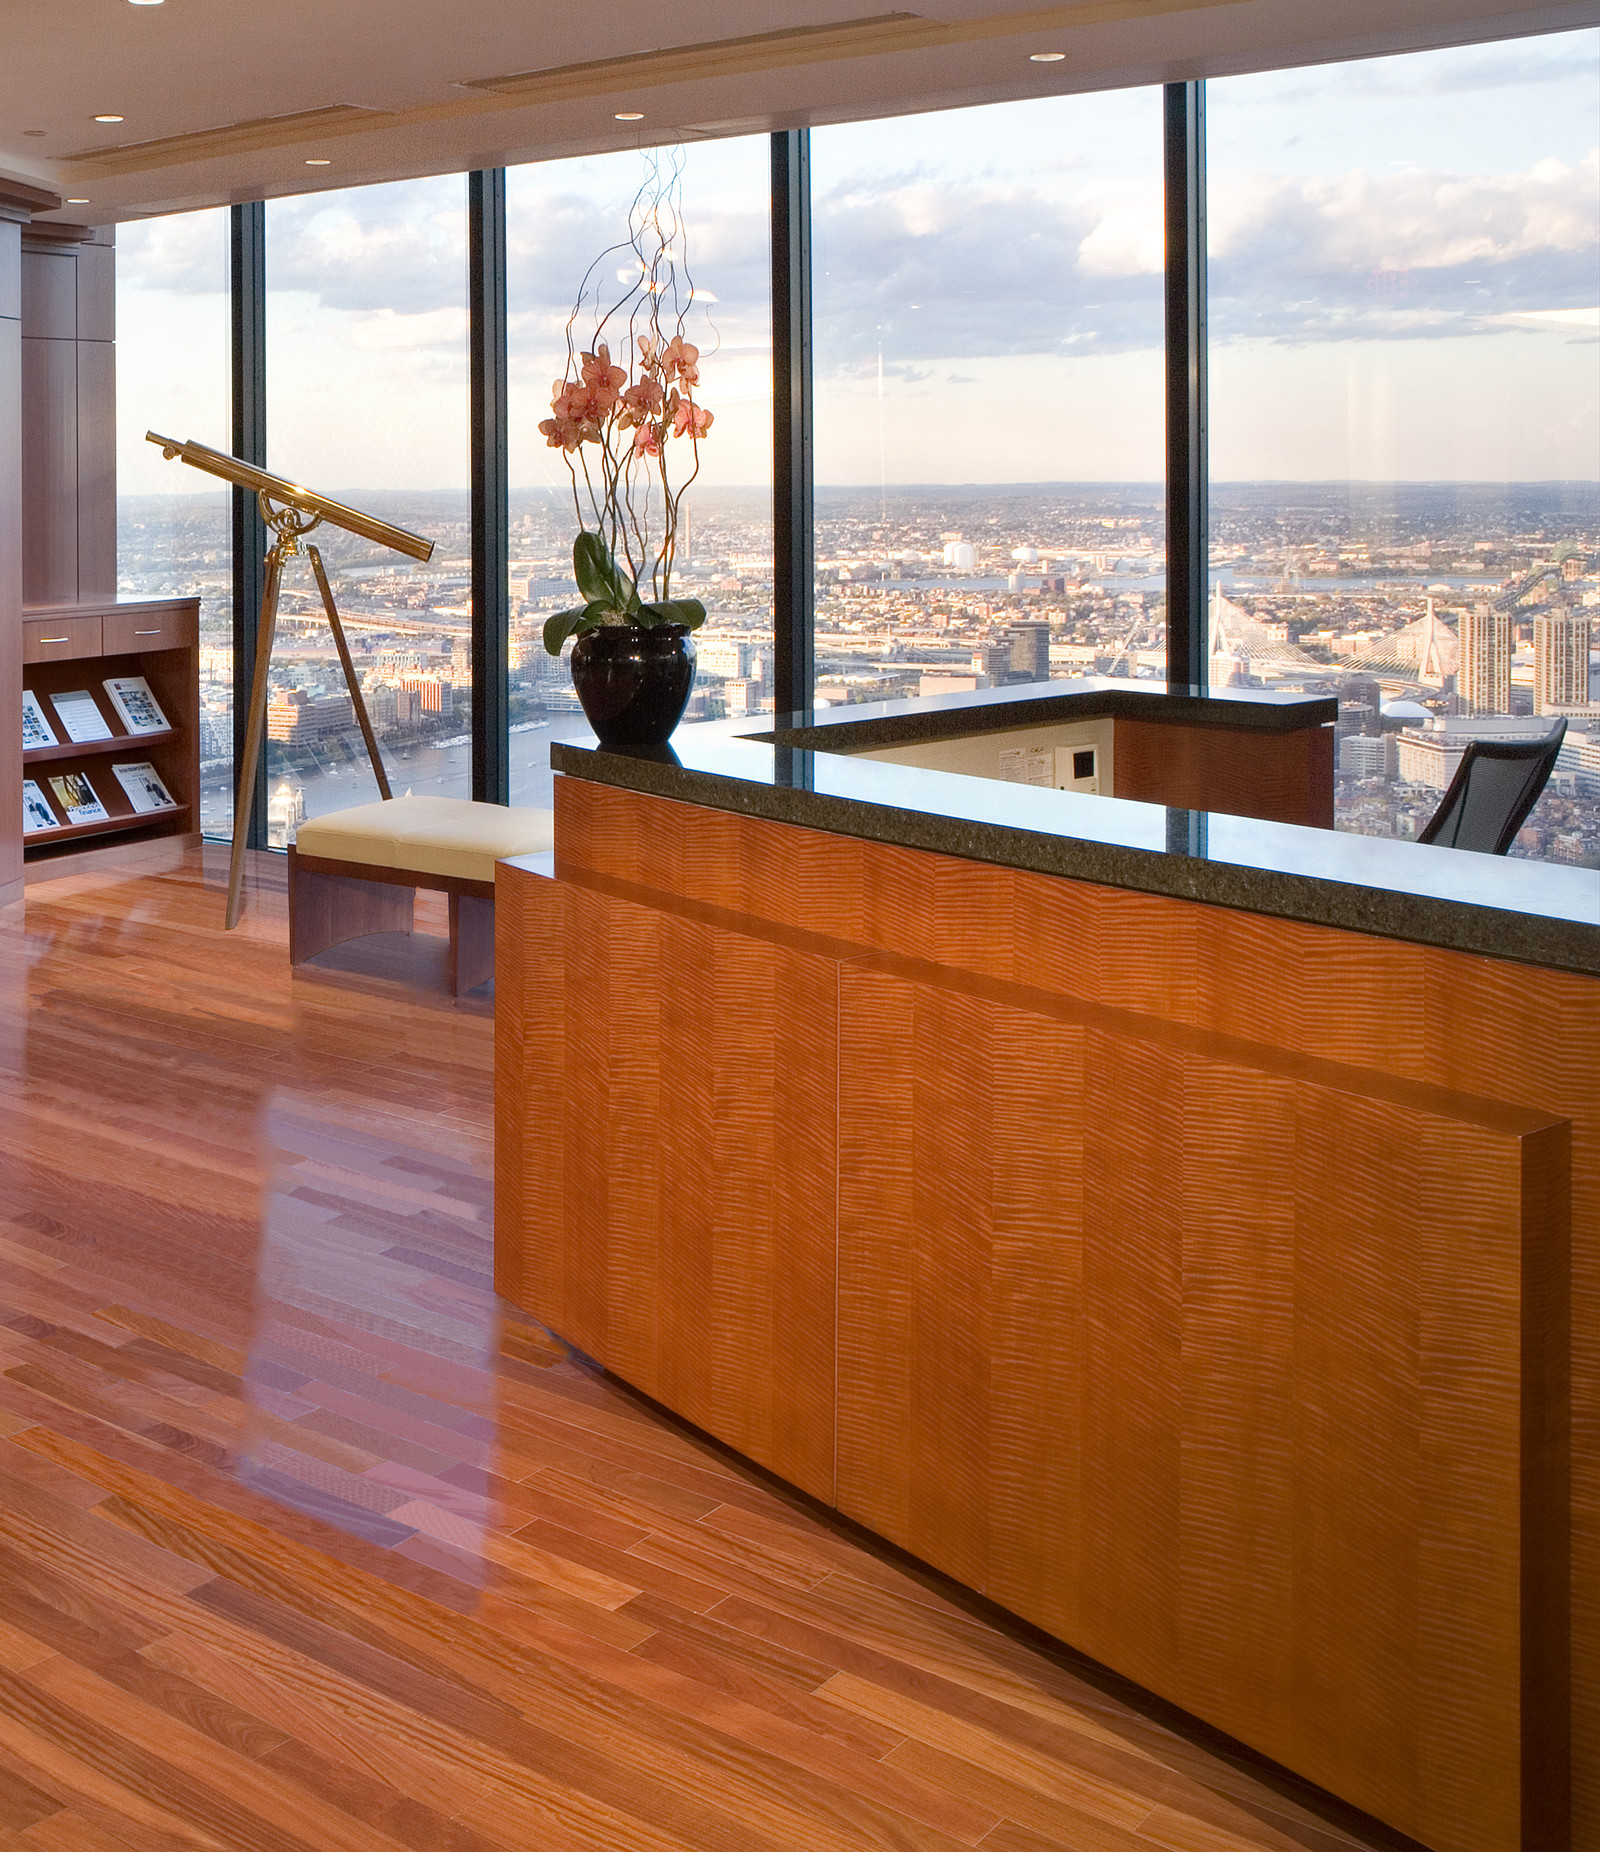 This reception desk sets the warm tone for this dramatic space in the center of Boston.